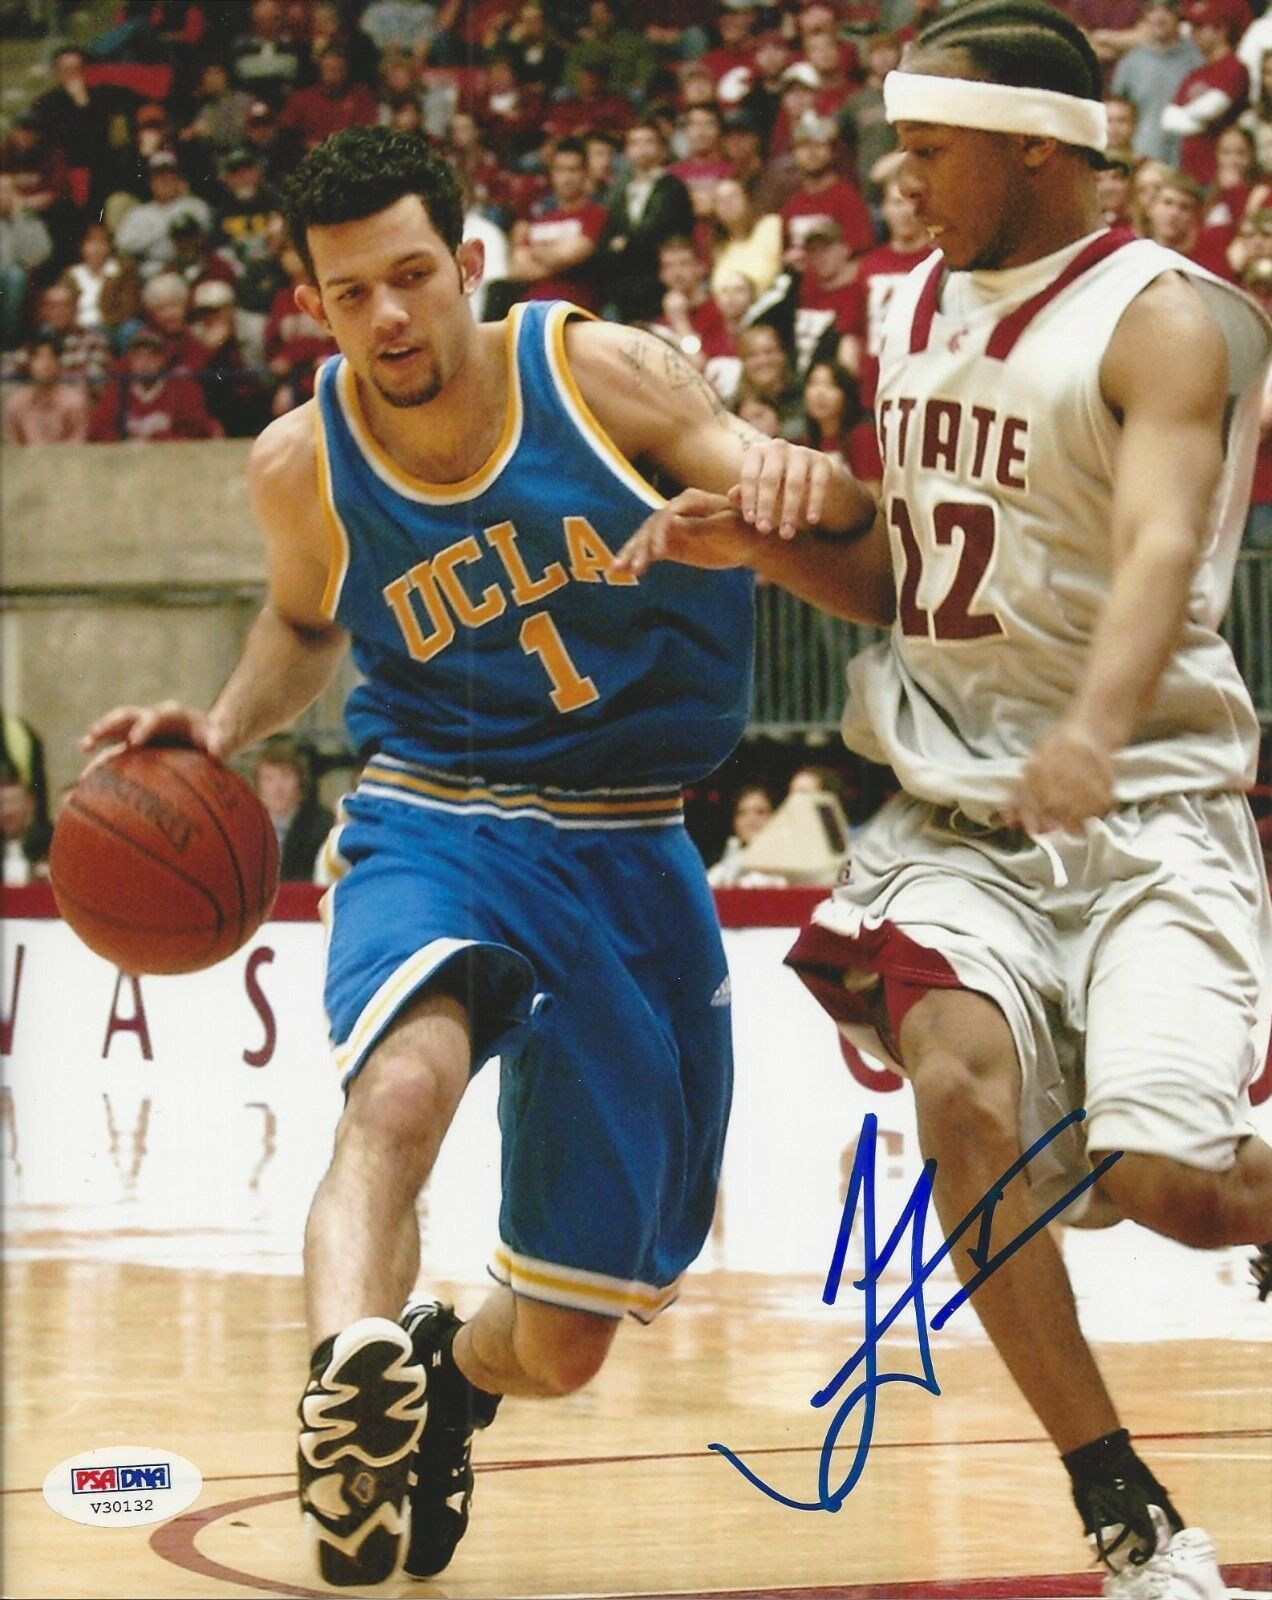 Jordan Farmar UCLA signed 8x10 photo PSA/DNA #V30132